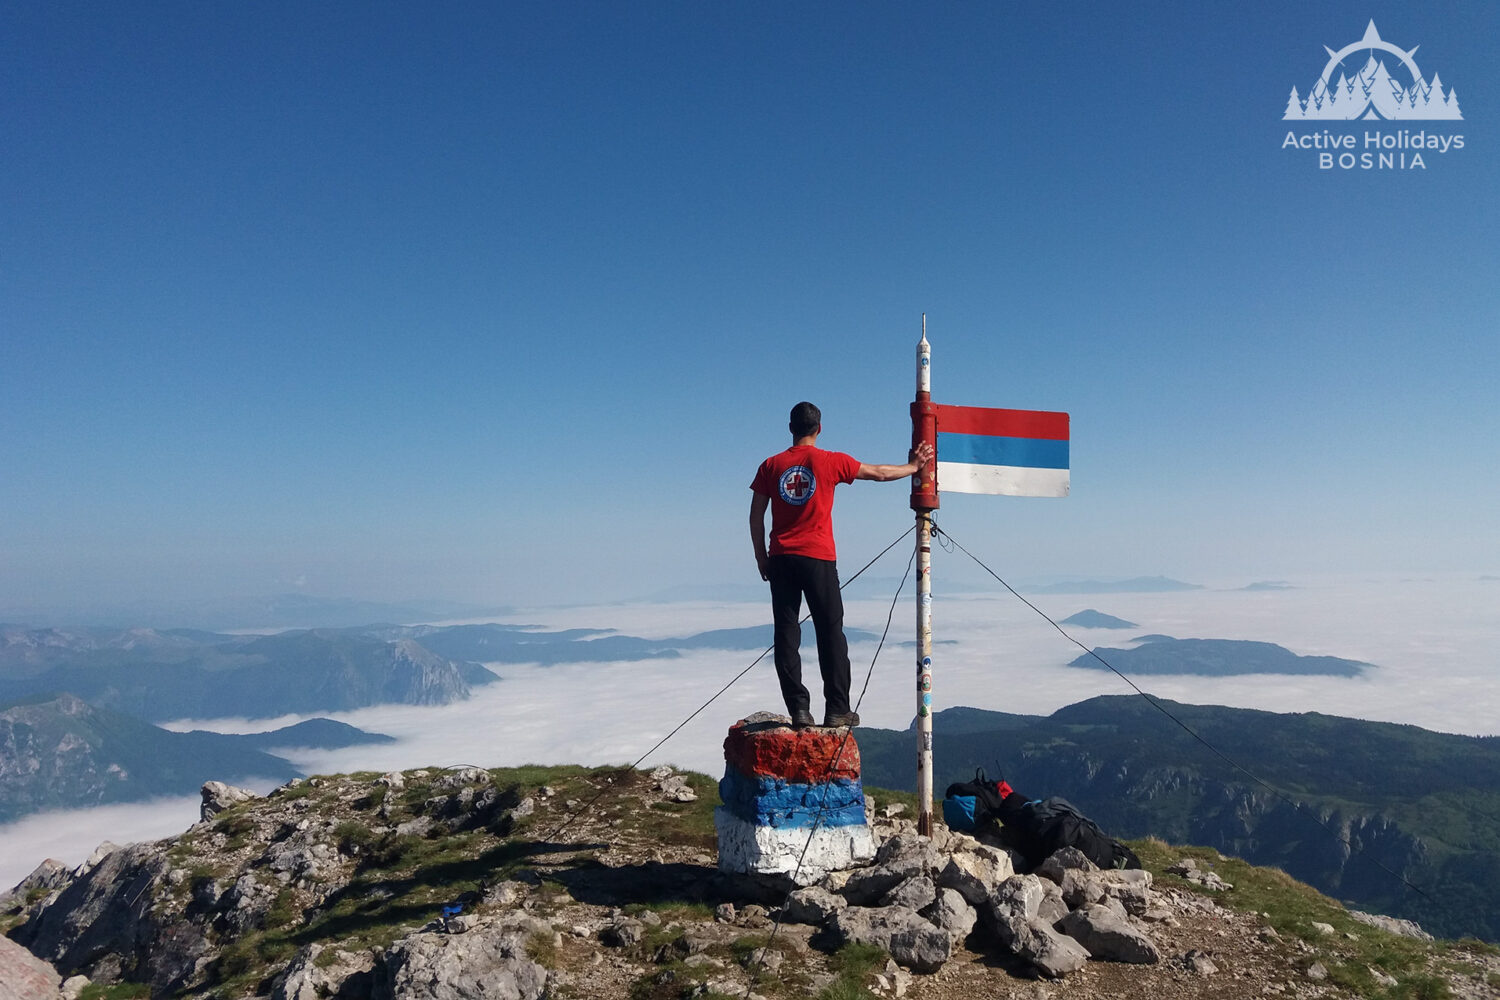 Top of the mountain Maglic